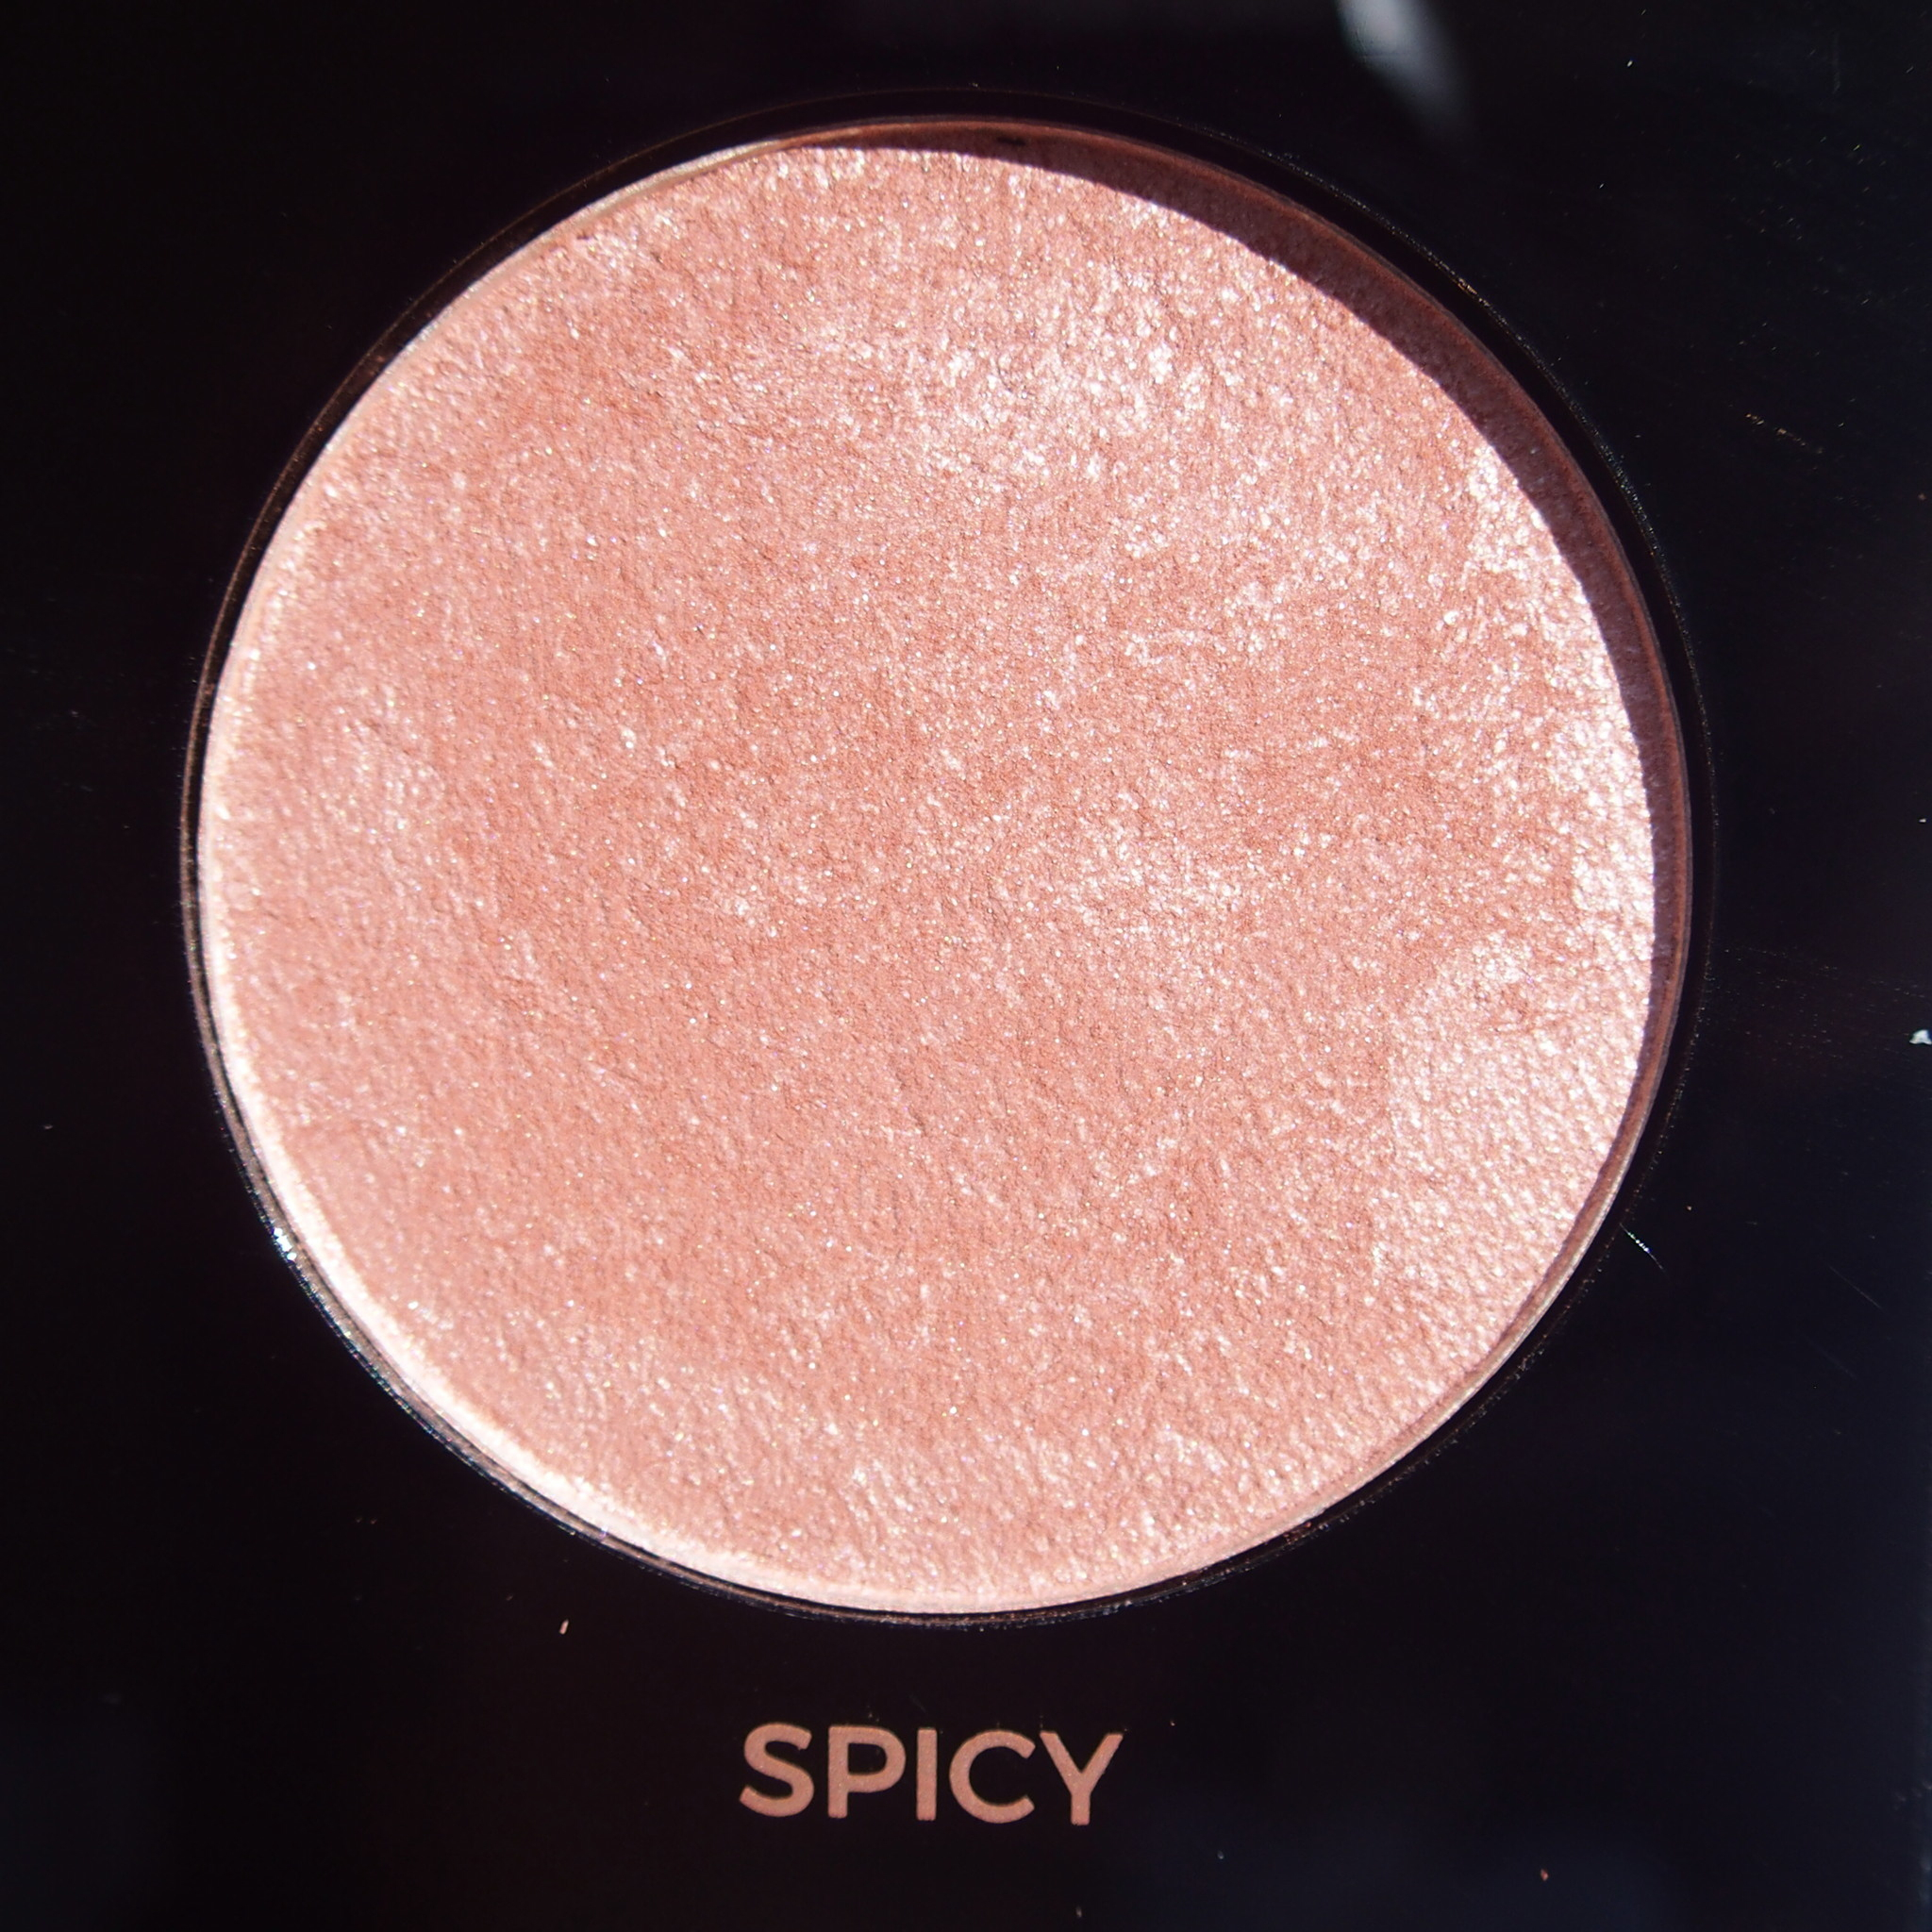 Makeup Revolution Pro HD Amplified Get Baked Palette swatches - Spicy